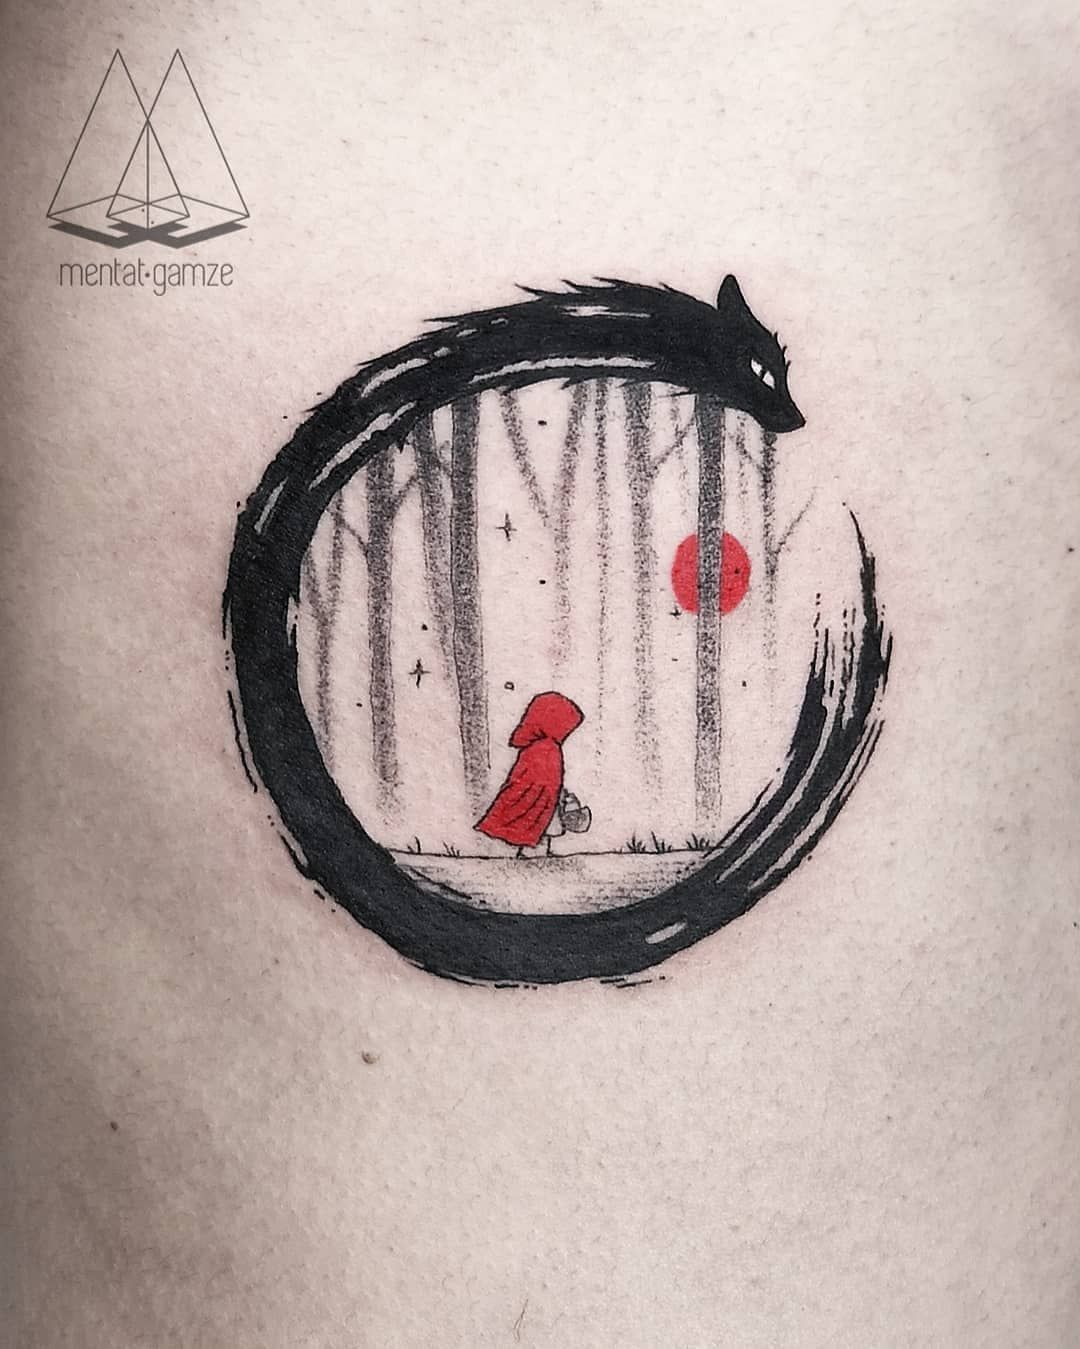 "MENTAT • GAMZE on Instagram: ""Little red riding hood and some hidden symboles for his little daughter 🖤🐺 . . . . #mentatgamze #draw #istanbul #graphictattoo #drawing…"""